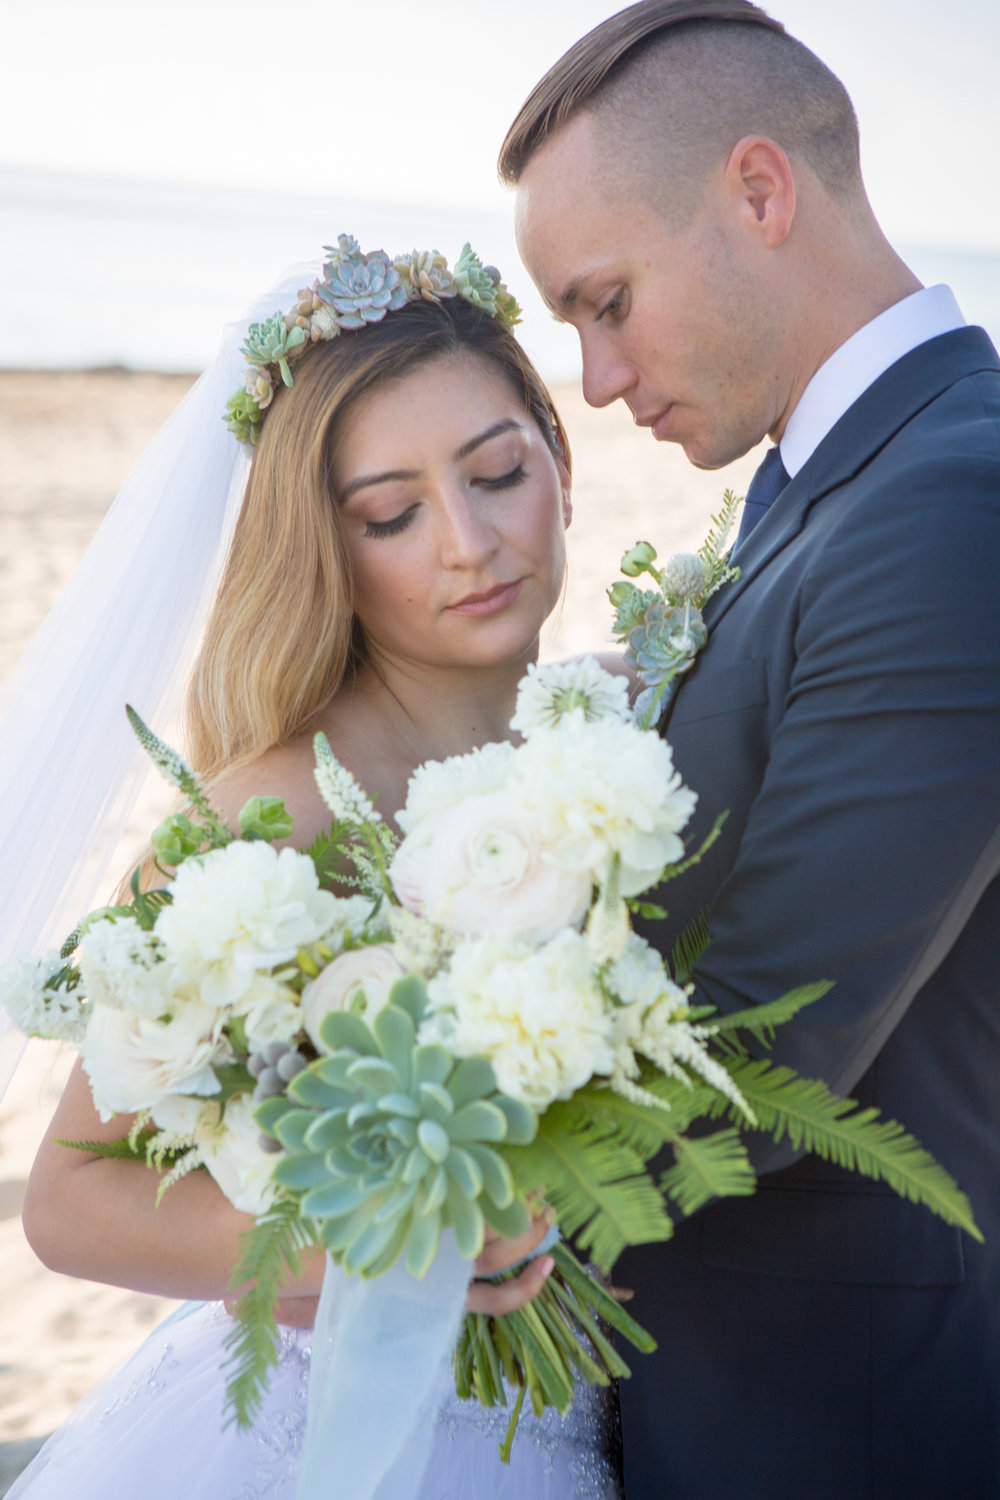 Bride with natural wedding bouquet and flower crown at beach wedding with groom